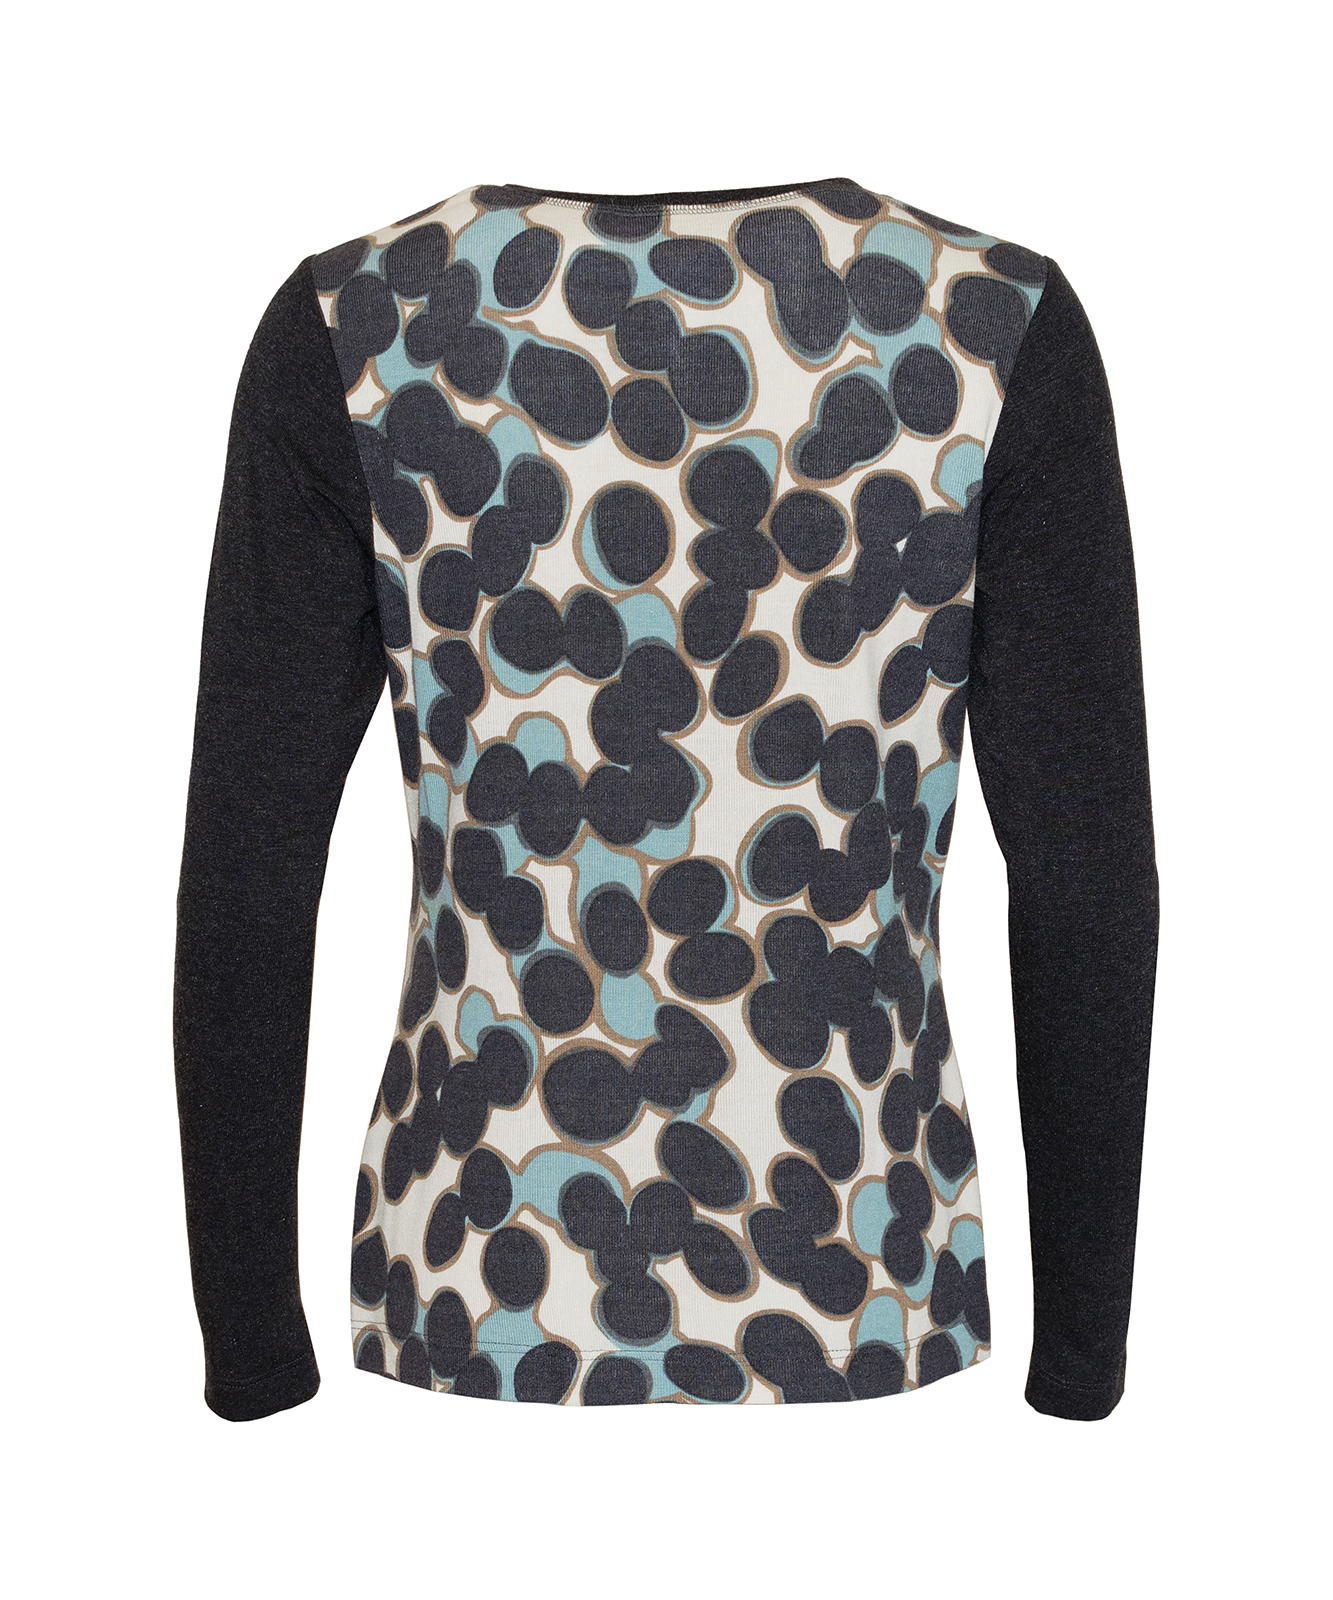 be2f4bf1e0bd3 ... patterned · Preview  Knitted pullover long sleeve